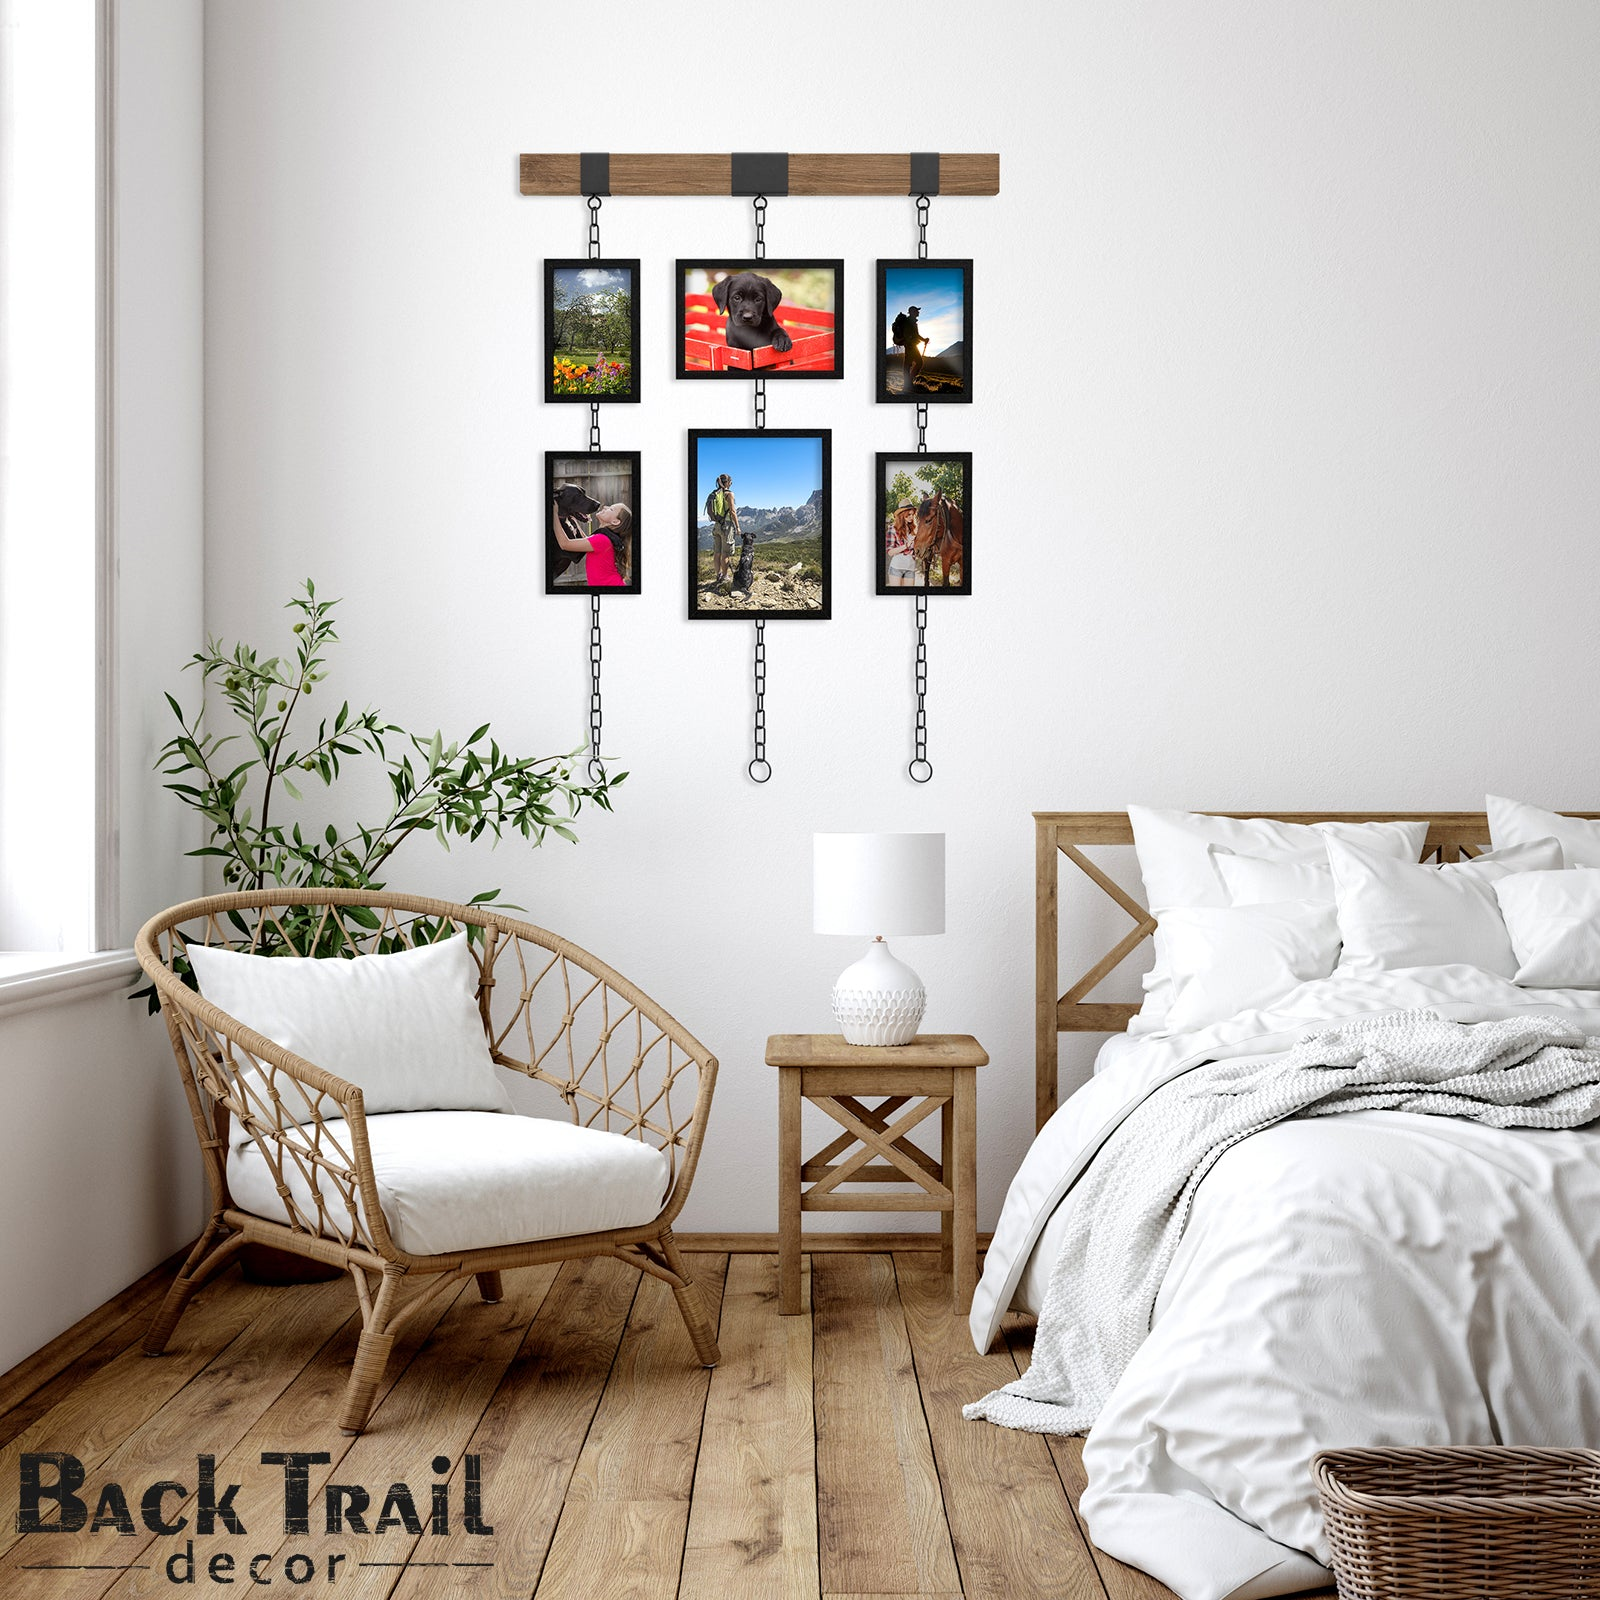 Rustic Wall Gallery Frame Set - picture frame collage for wall, 6 frames